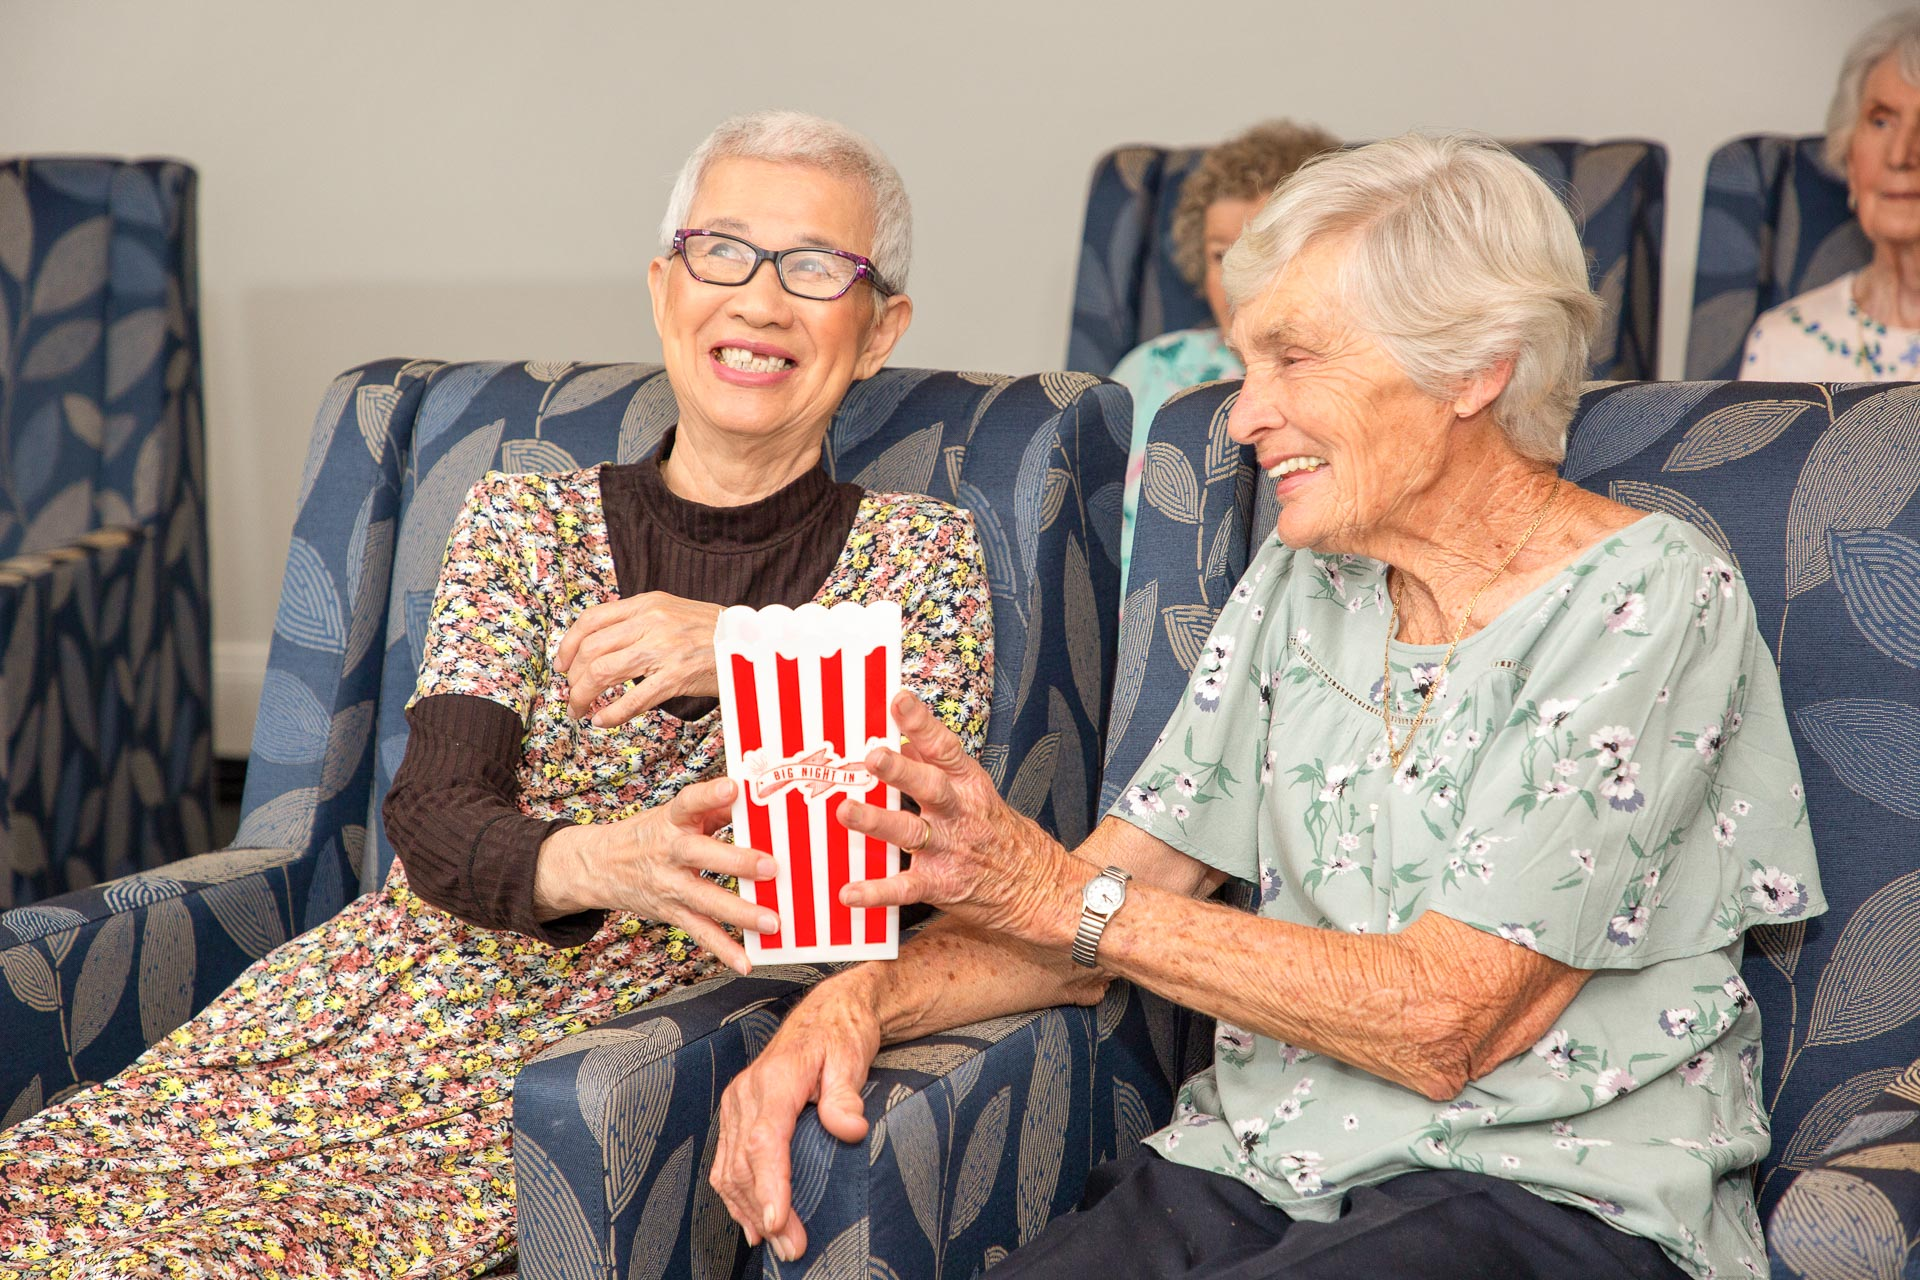 CraigCare-Residential-Aged-Care-Home-Lifestyle-Movie-Cinema